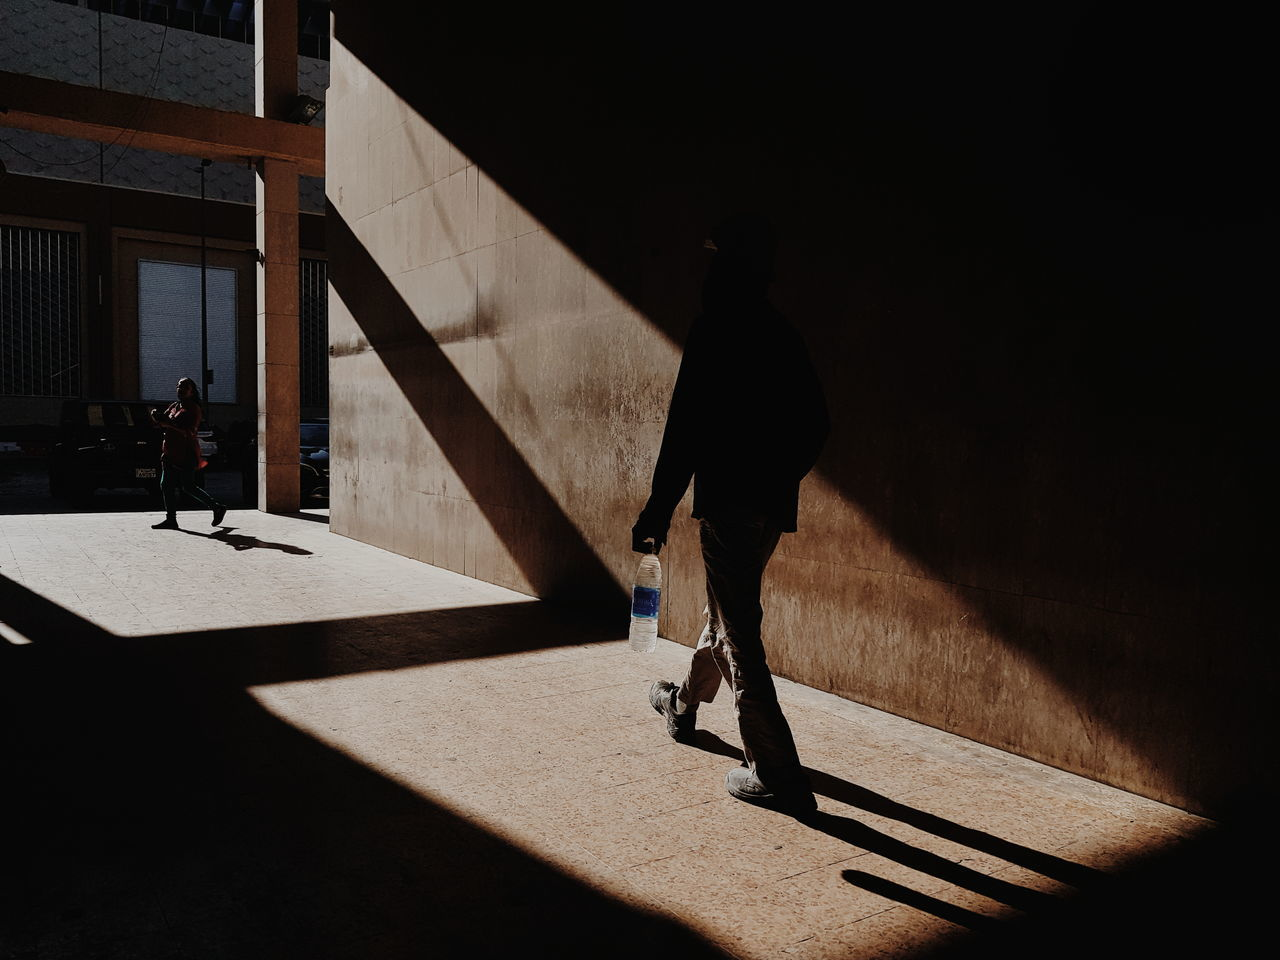 shadow Sunlight sport lifestyles low section only women day Adult people one person Adults Only one woman only outdoors kuwaitstreetphotography yoonjeongvin Kuwait